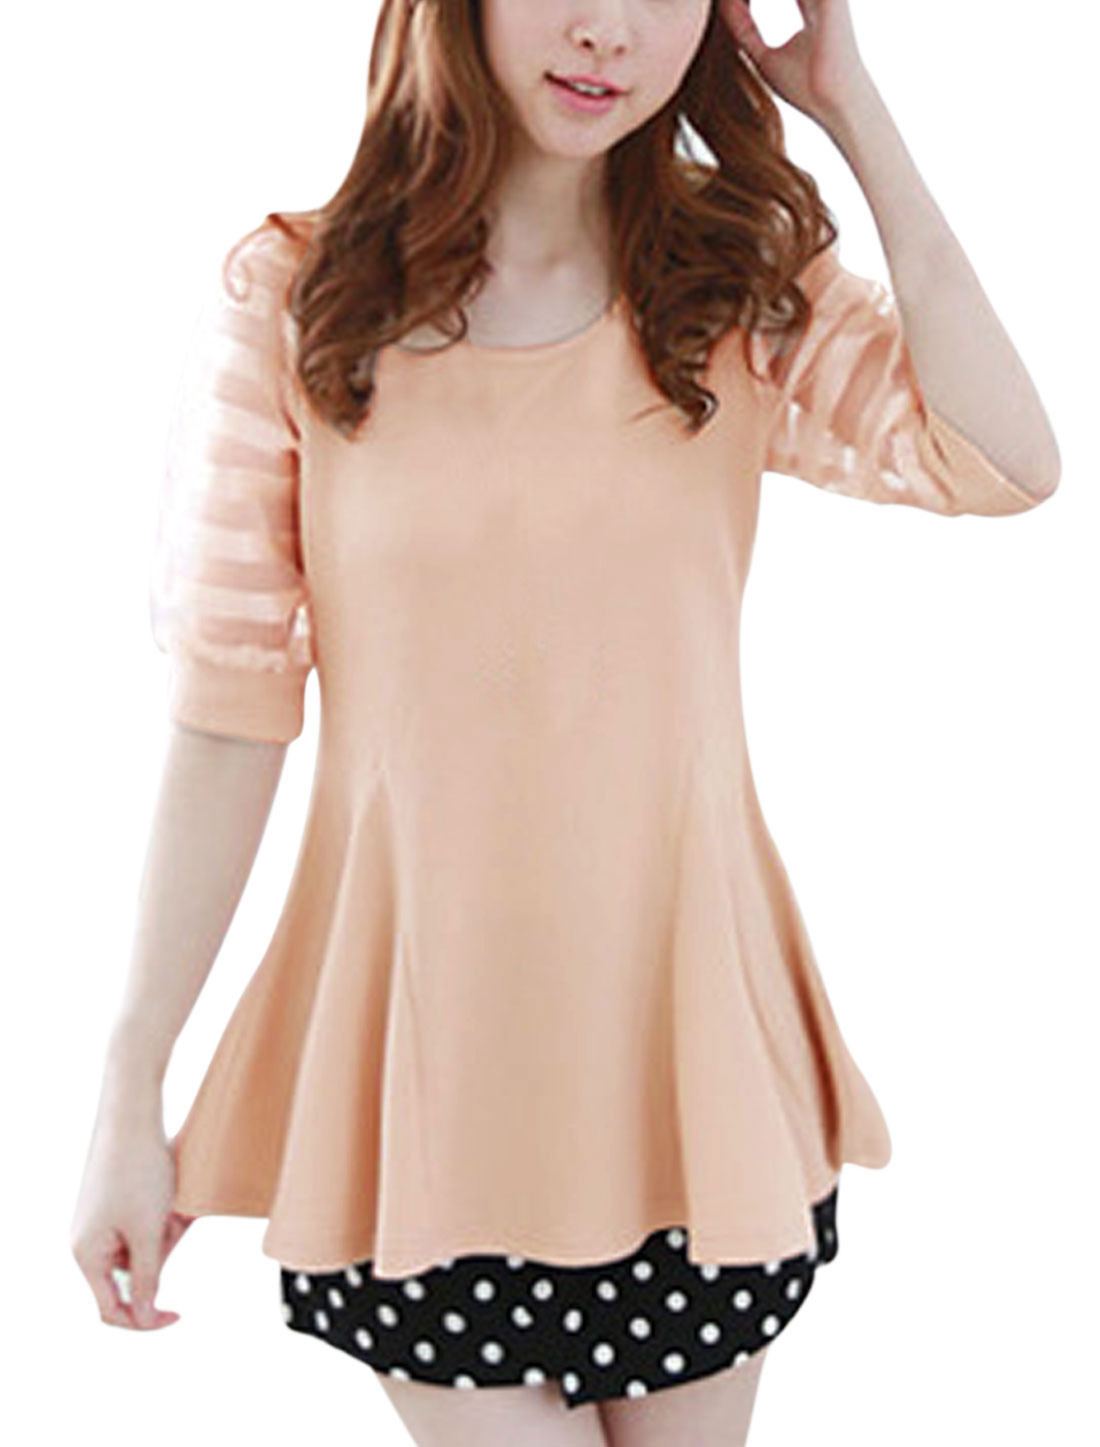 Lady Half Sleeve Organza-Patched Sleeve Stripes Peplum Top Salmon S